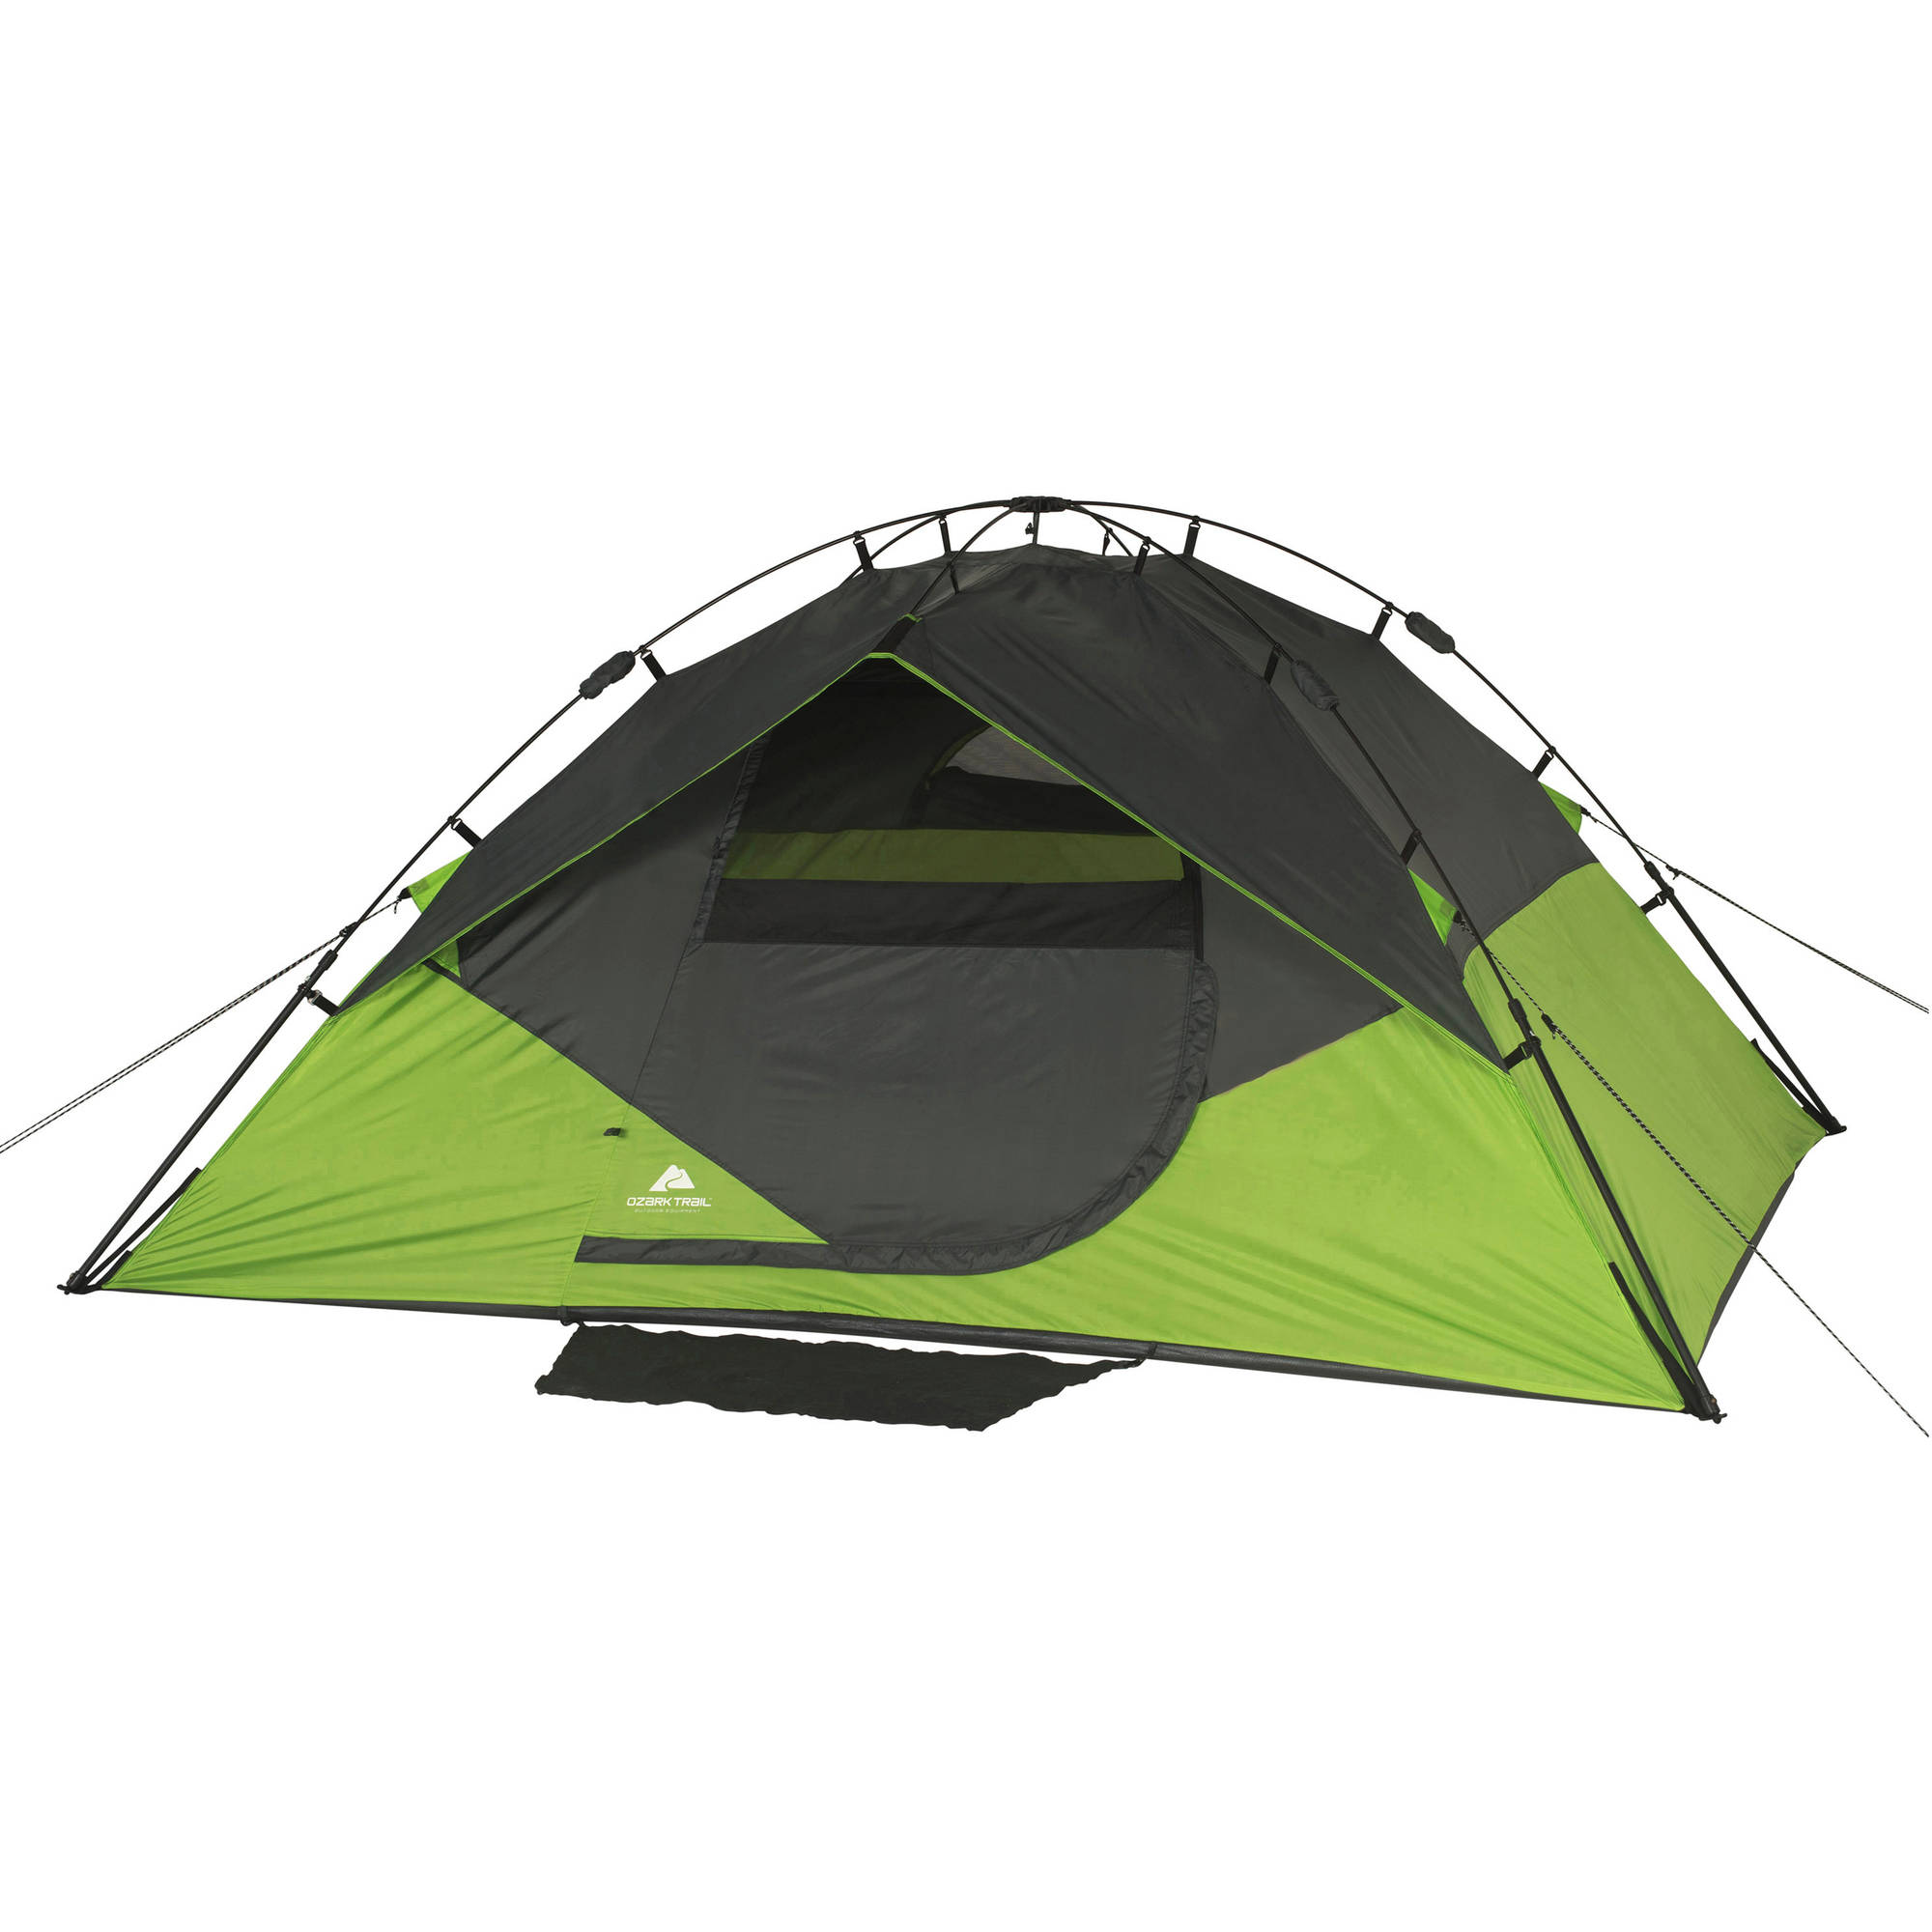 Ozark Trail 4 Person Instant Dome Tent  sc 1 st  Walmart & Ozark Trail 4 Person Instant Dome Tent - Walmart.com